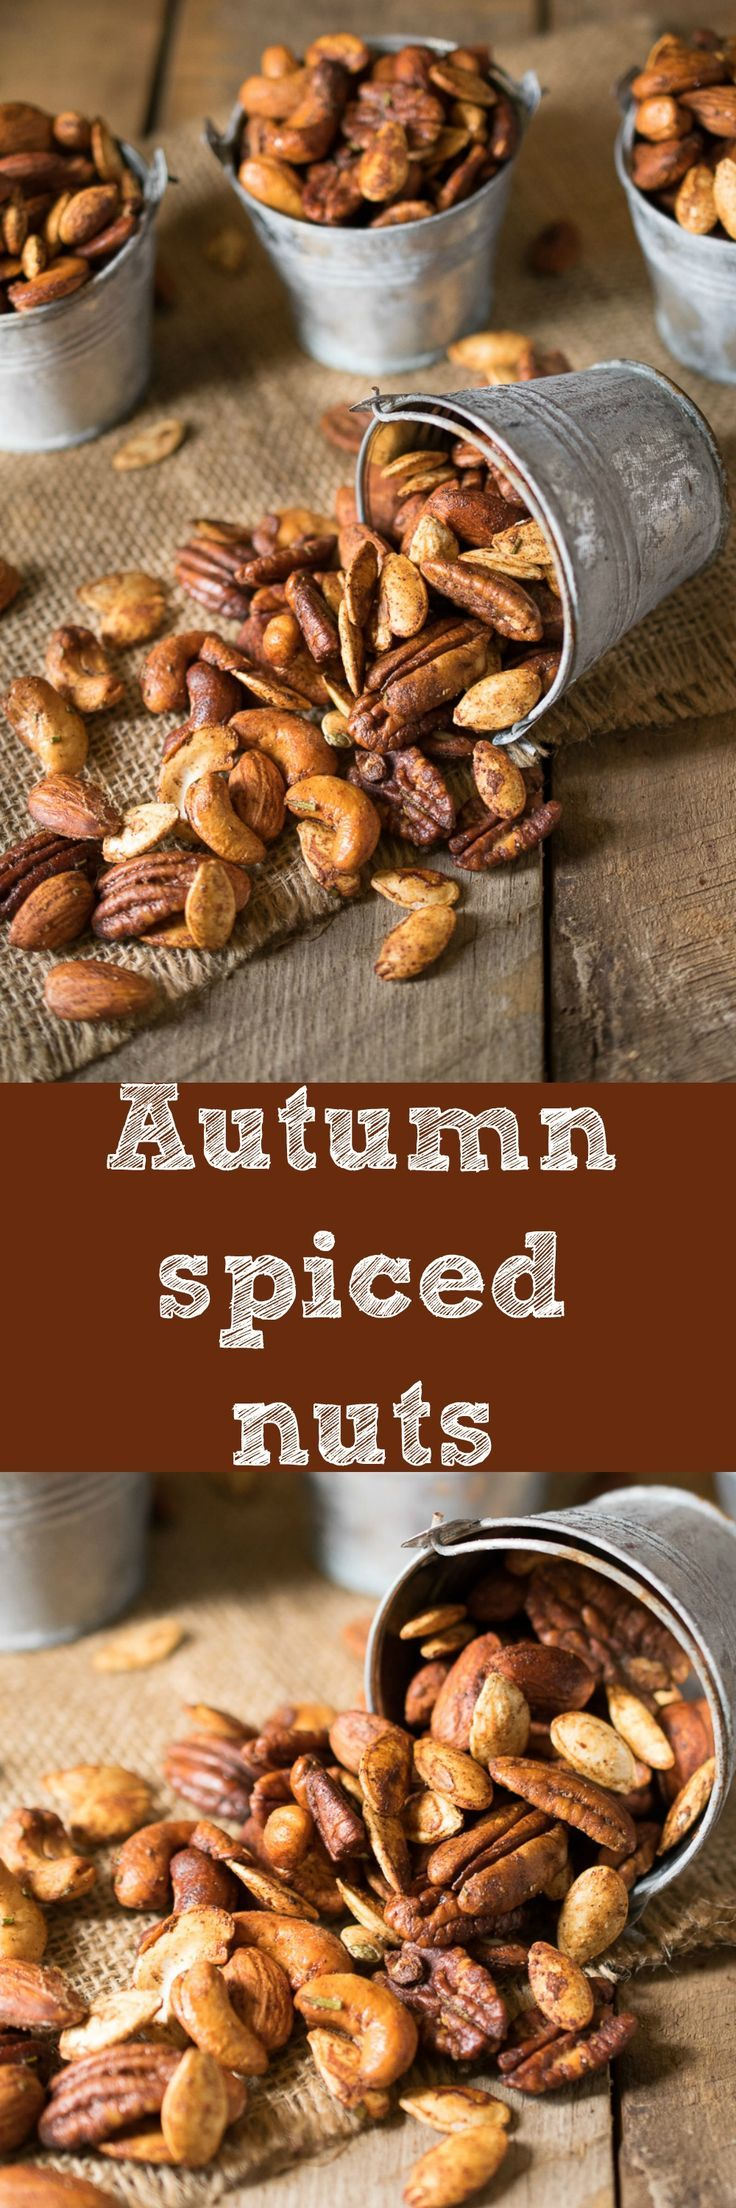 Mixed nuts and pumpkin seeds are roasted with warm spices, honey and rosemary, a perfectly comforting snack.